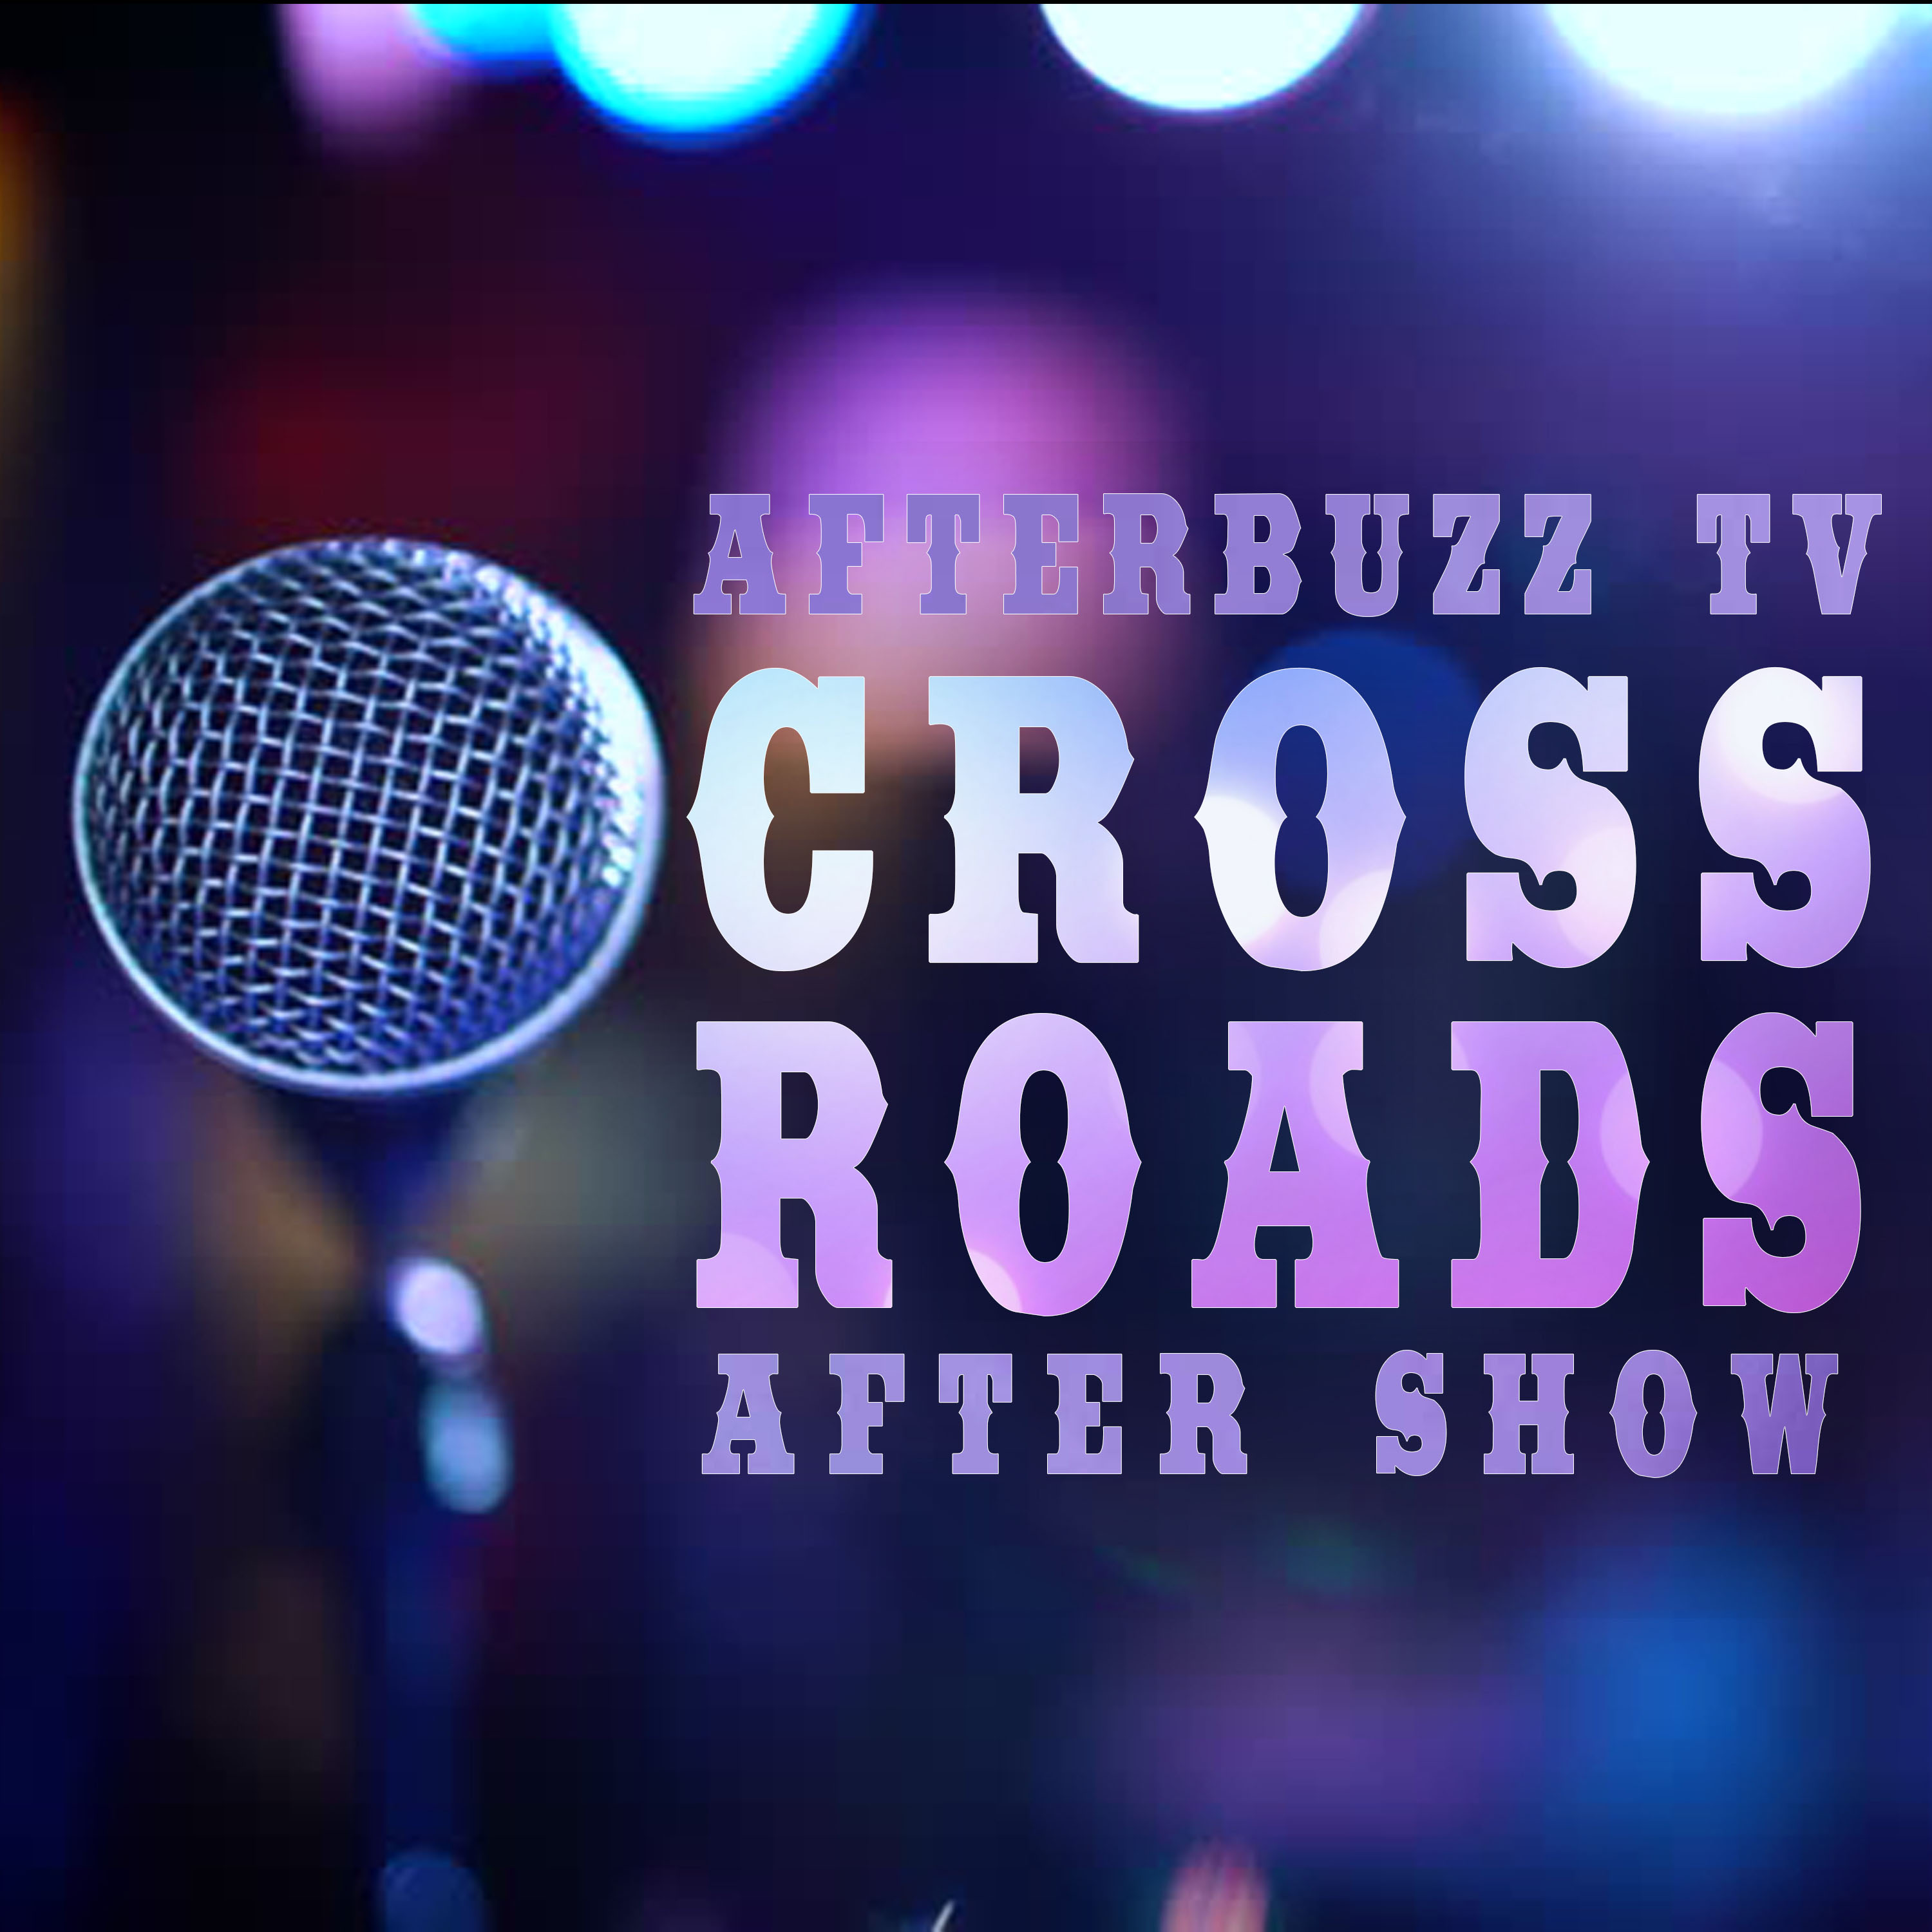 CMT's Crossroads After Show